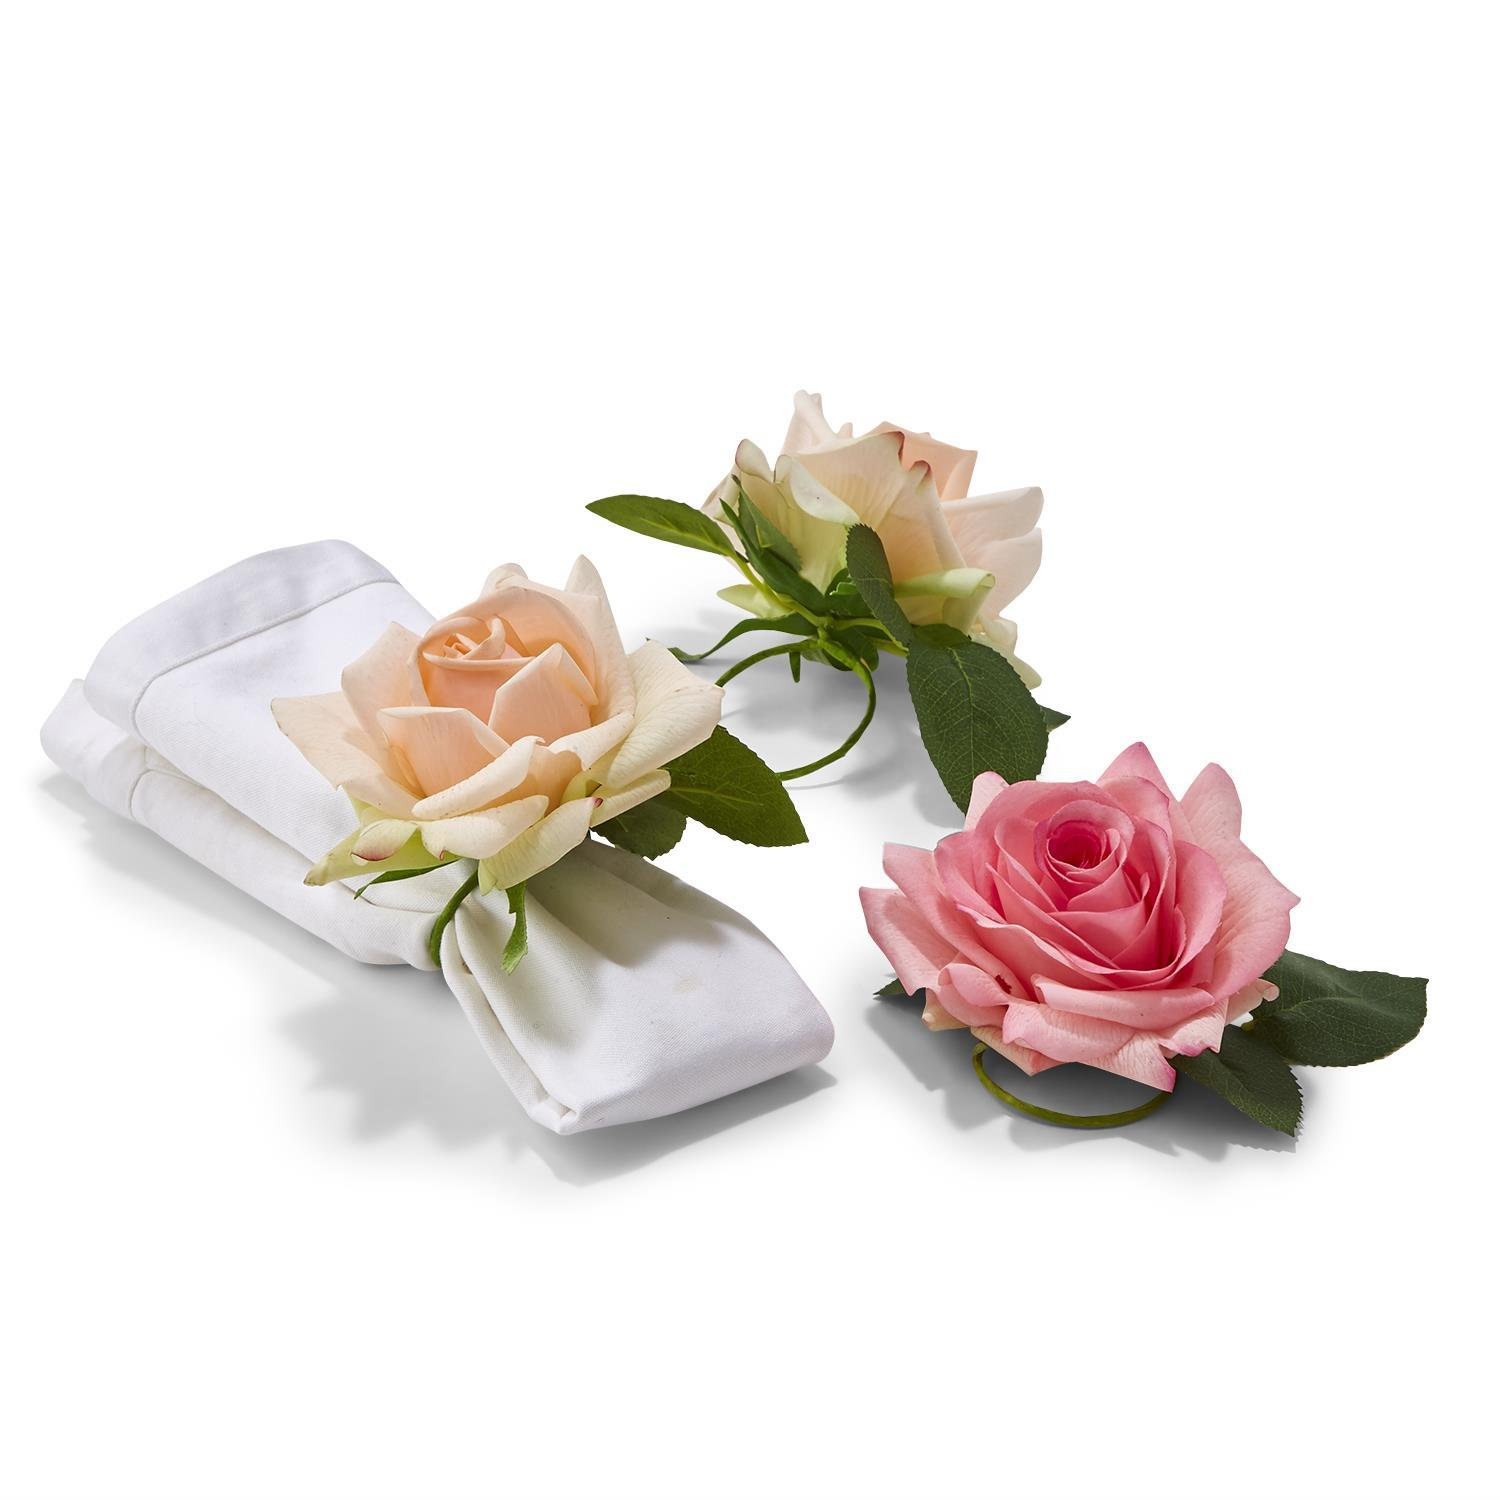 32 Pc Rose Napkin Ring Un Incl 2 Colors In Basket